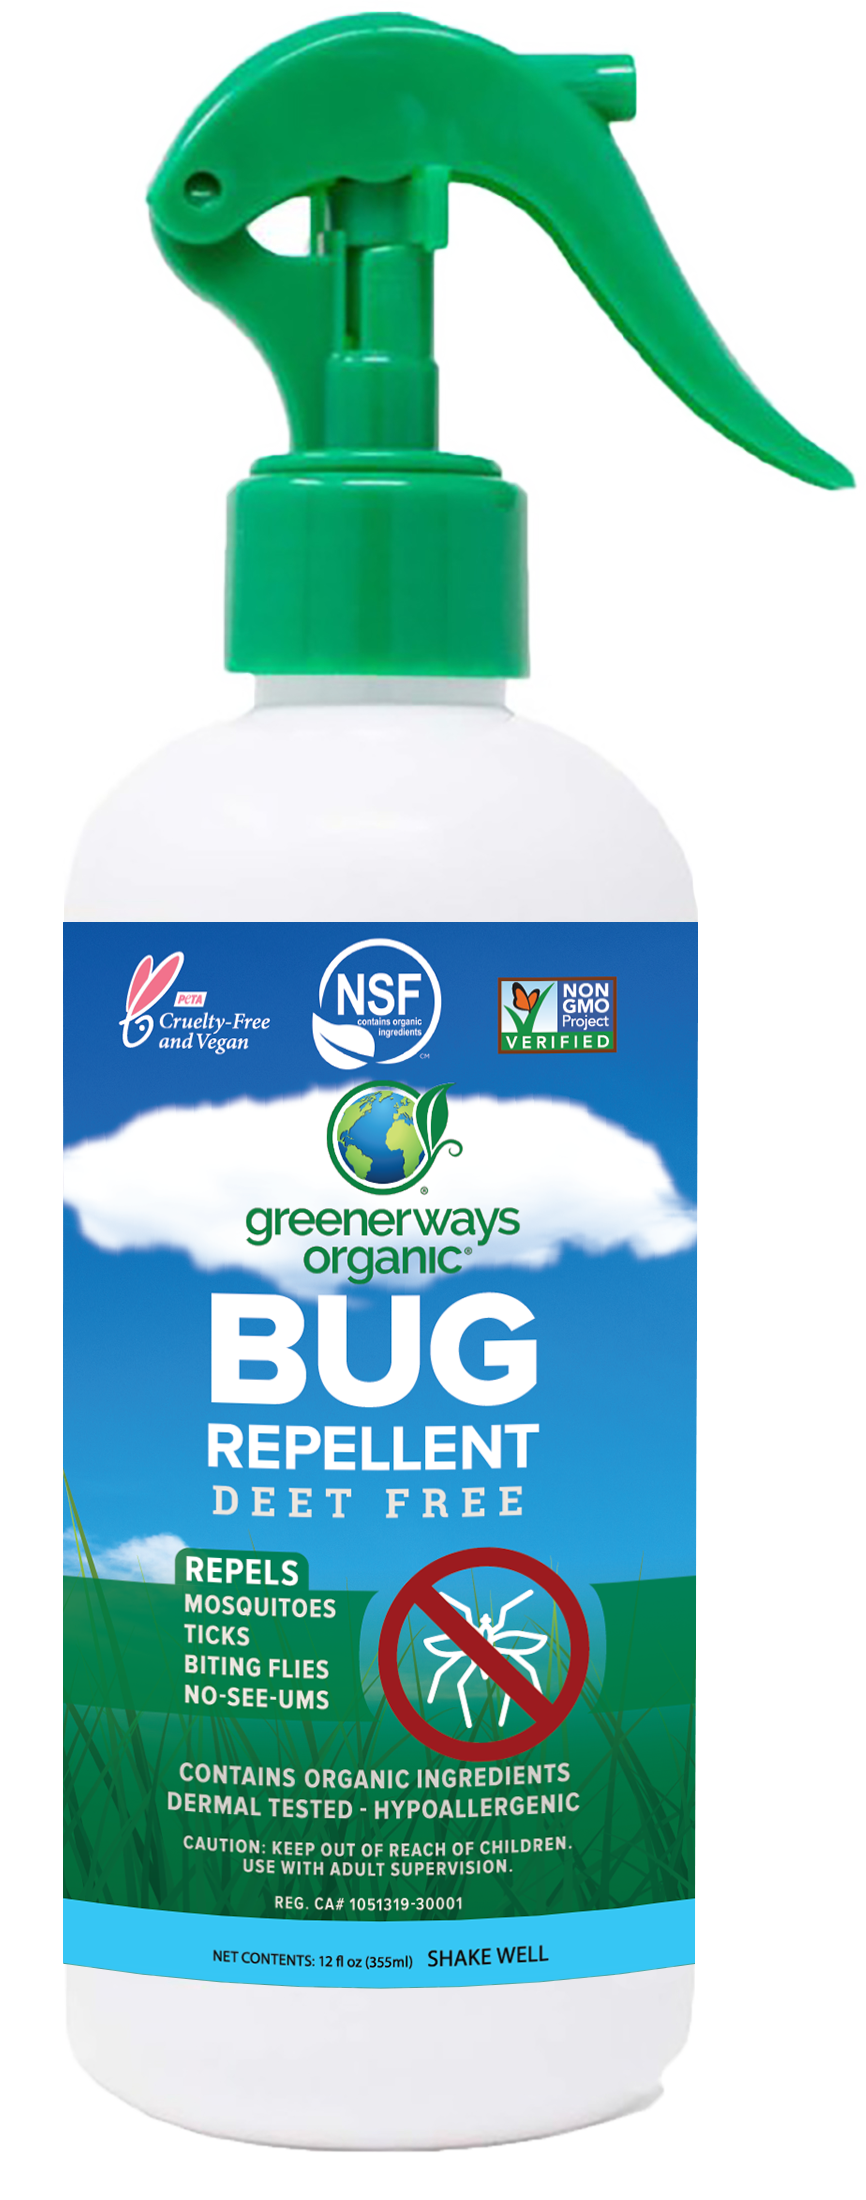 Greenerways Organic Natural Insect and Mosquito Repellent, Family Safe Bug Spray, DEET FREE (12oz)